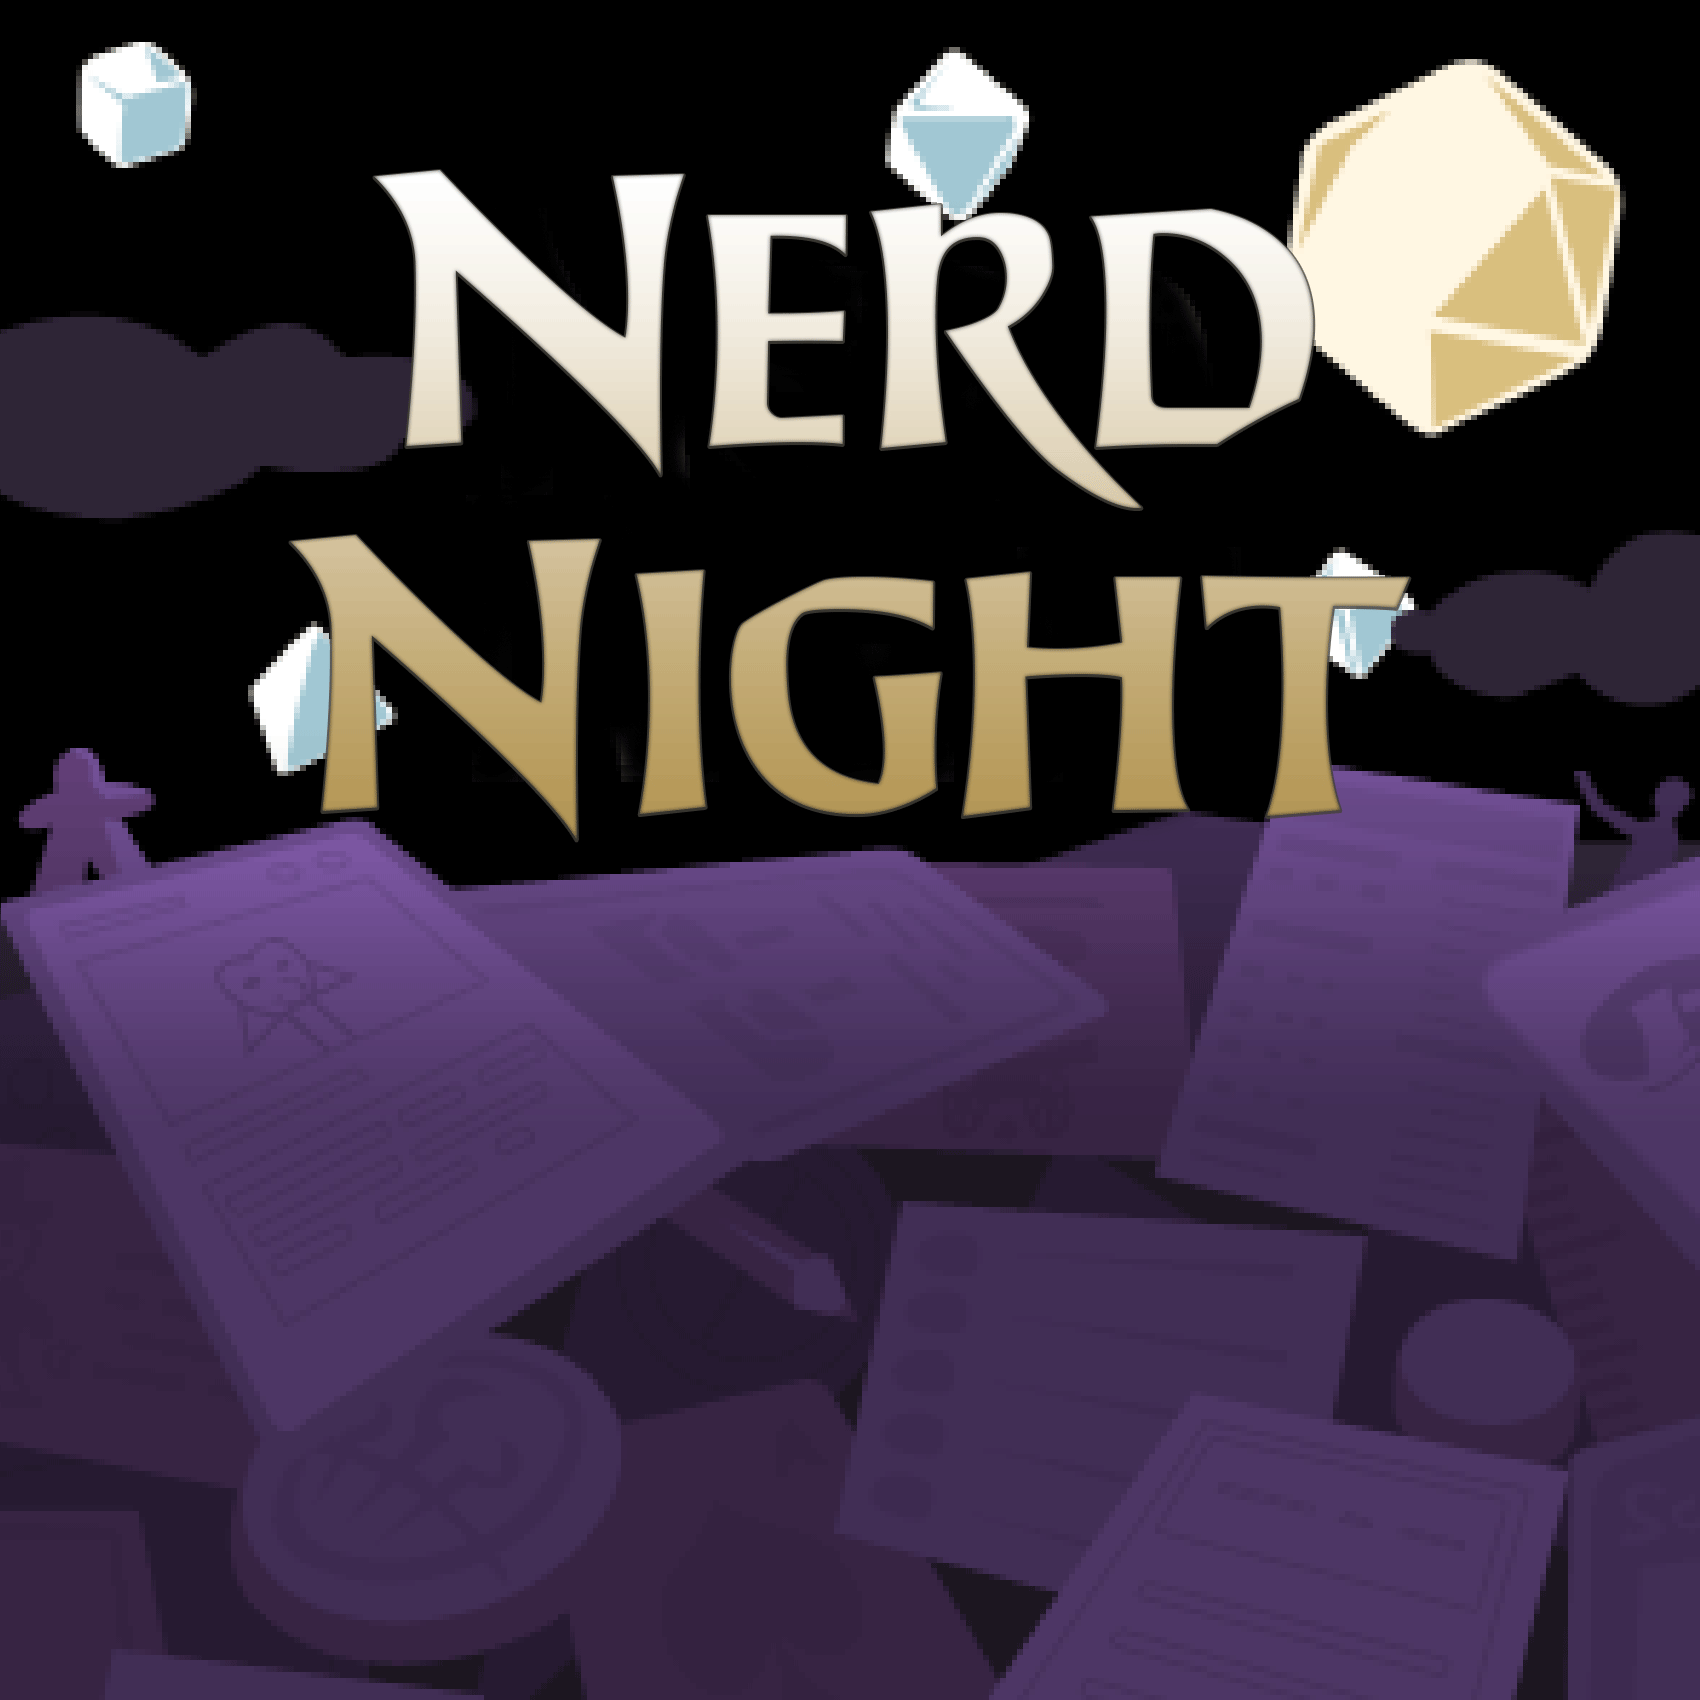 Final Boss Fight - Nerd Night